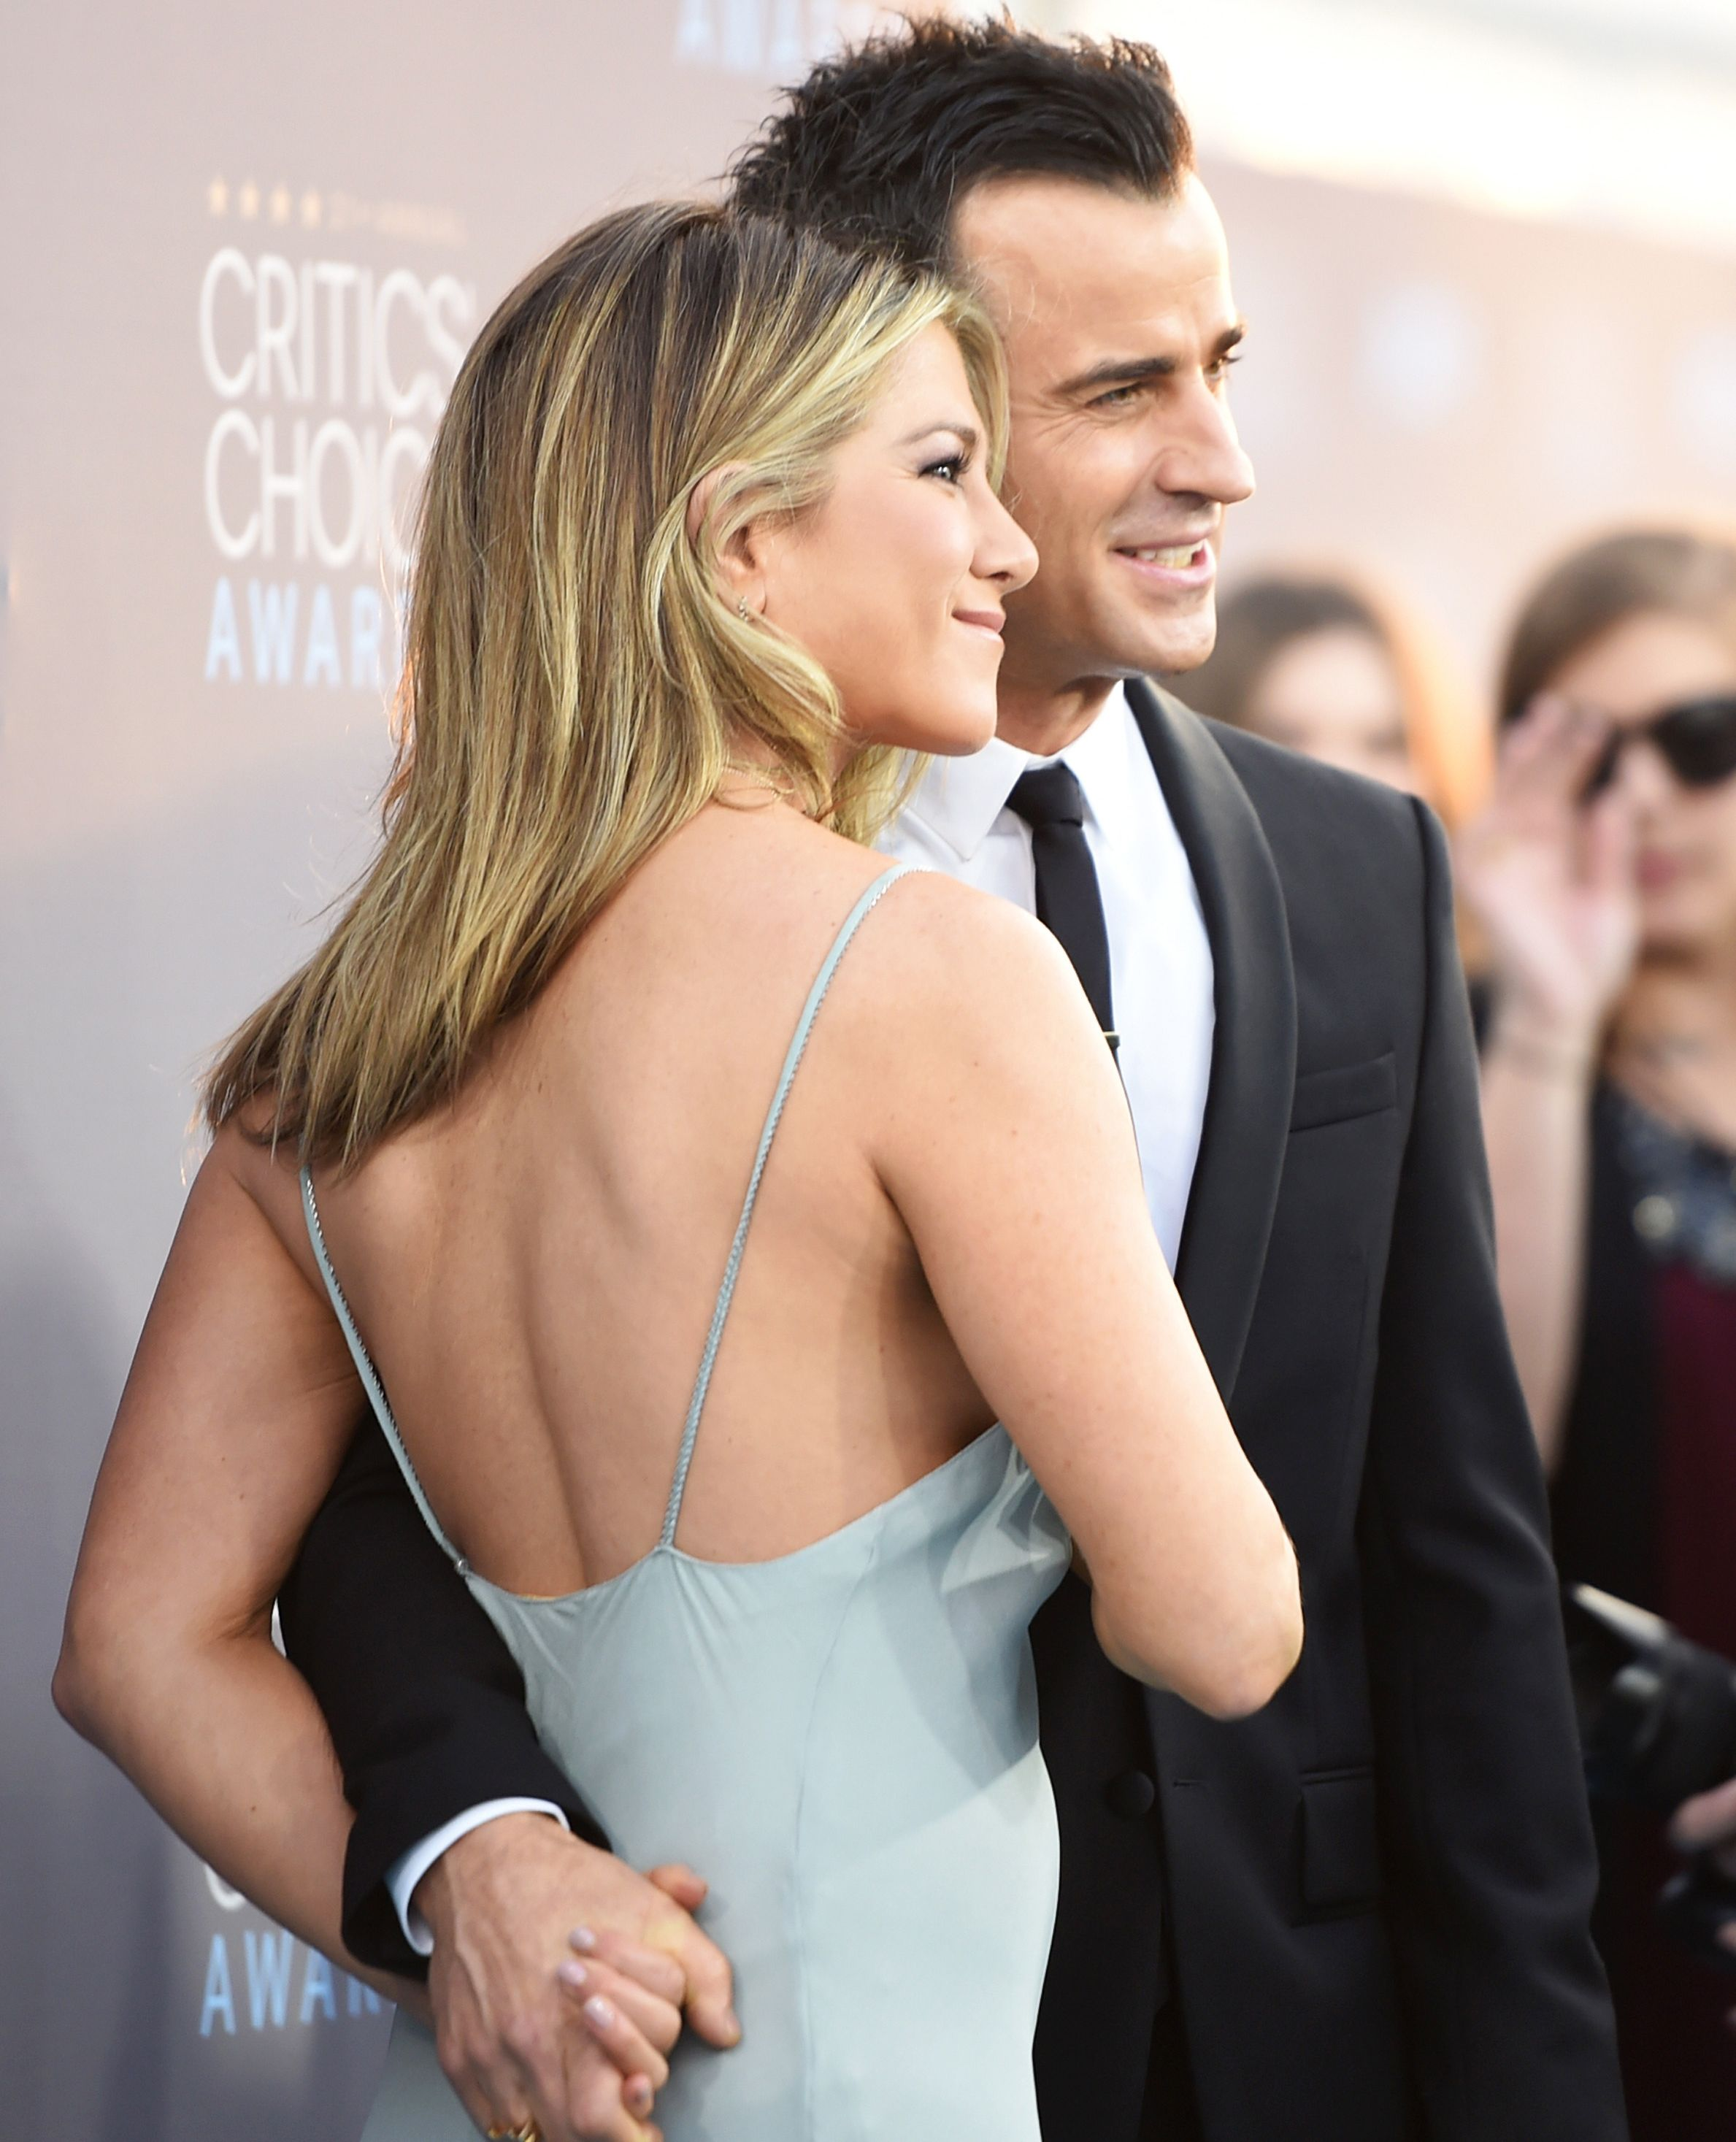 12 Star Couples Who Aren't Afraid of a Little PDA on the Red Carpet - JENNIFER ANISTON AND JUSTIN THEROUX AT THE CRITICS' CHOICE AWARDS, JANUARY 2016.  - from InStyle.com